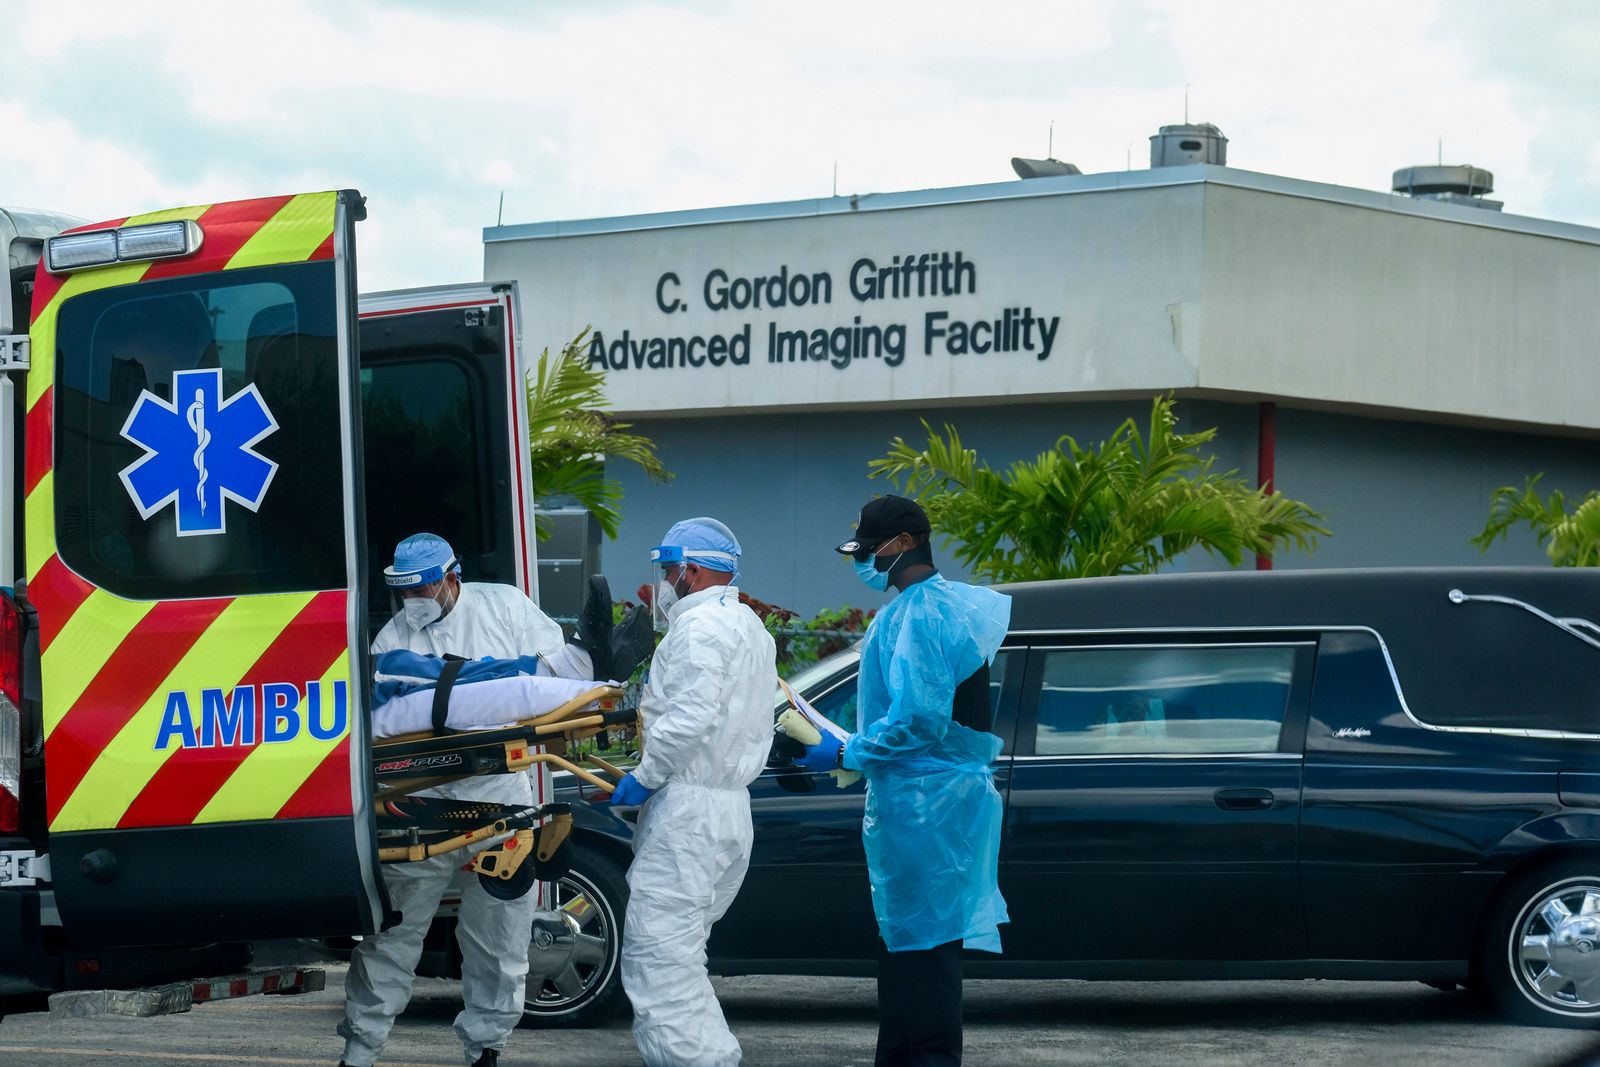 FILE PHOTO: Emergency Medical Technicians (EMT) arrive with a patient while a funeral car begins to depart at North Shore Medical Center where the coronavirus disease (COVID-19) patients are treated, in Miami